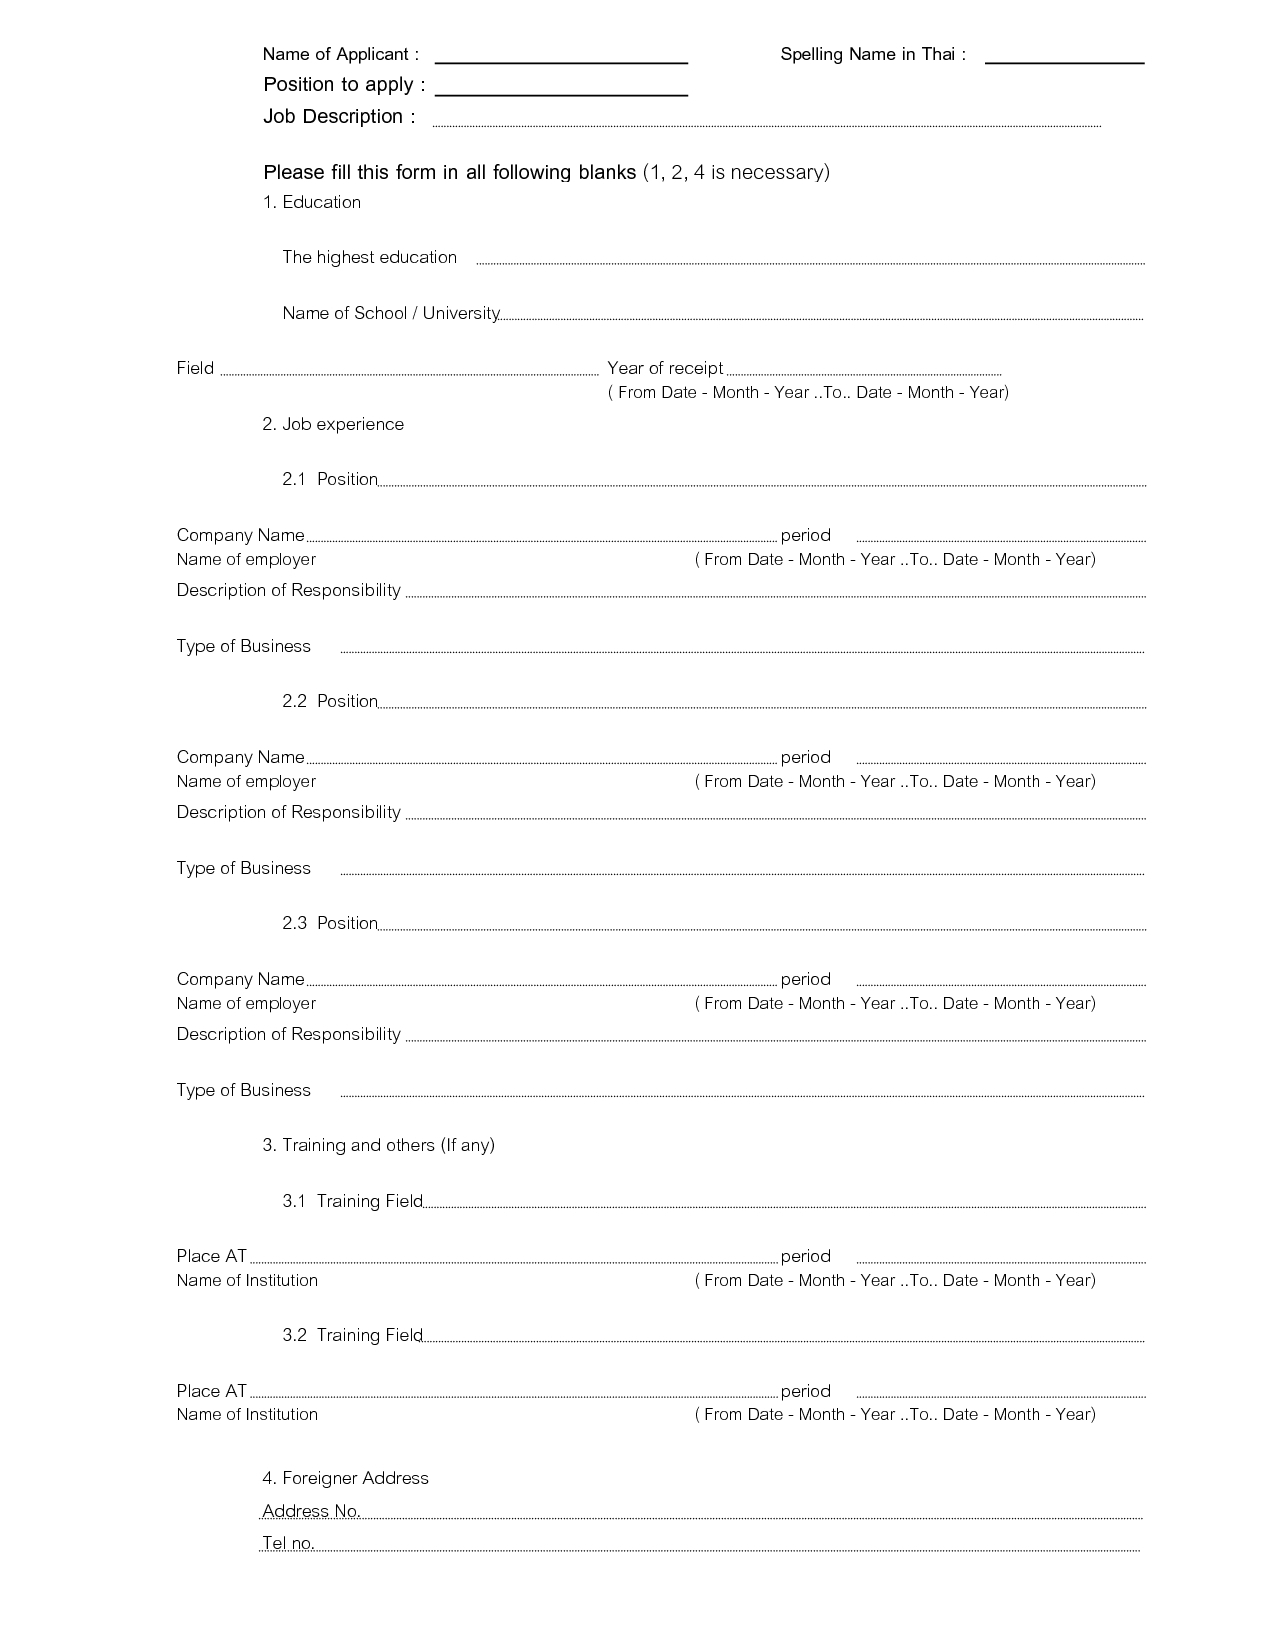 Fill In The Blank Resume - Tjfs-Journal for Fill In The Blank Template